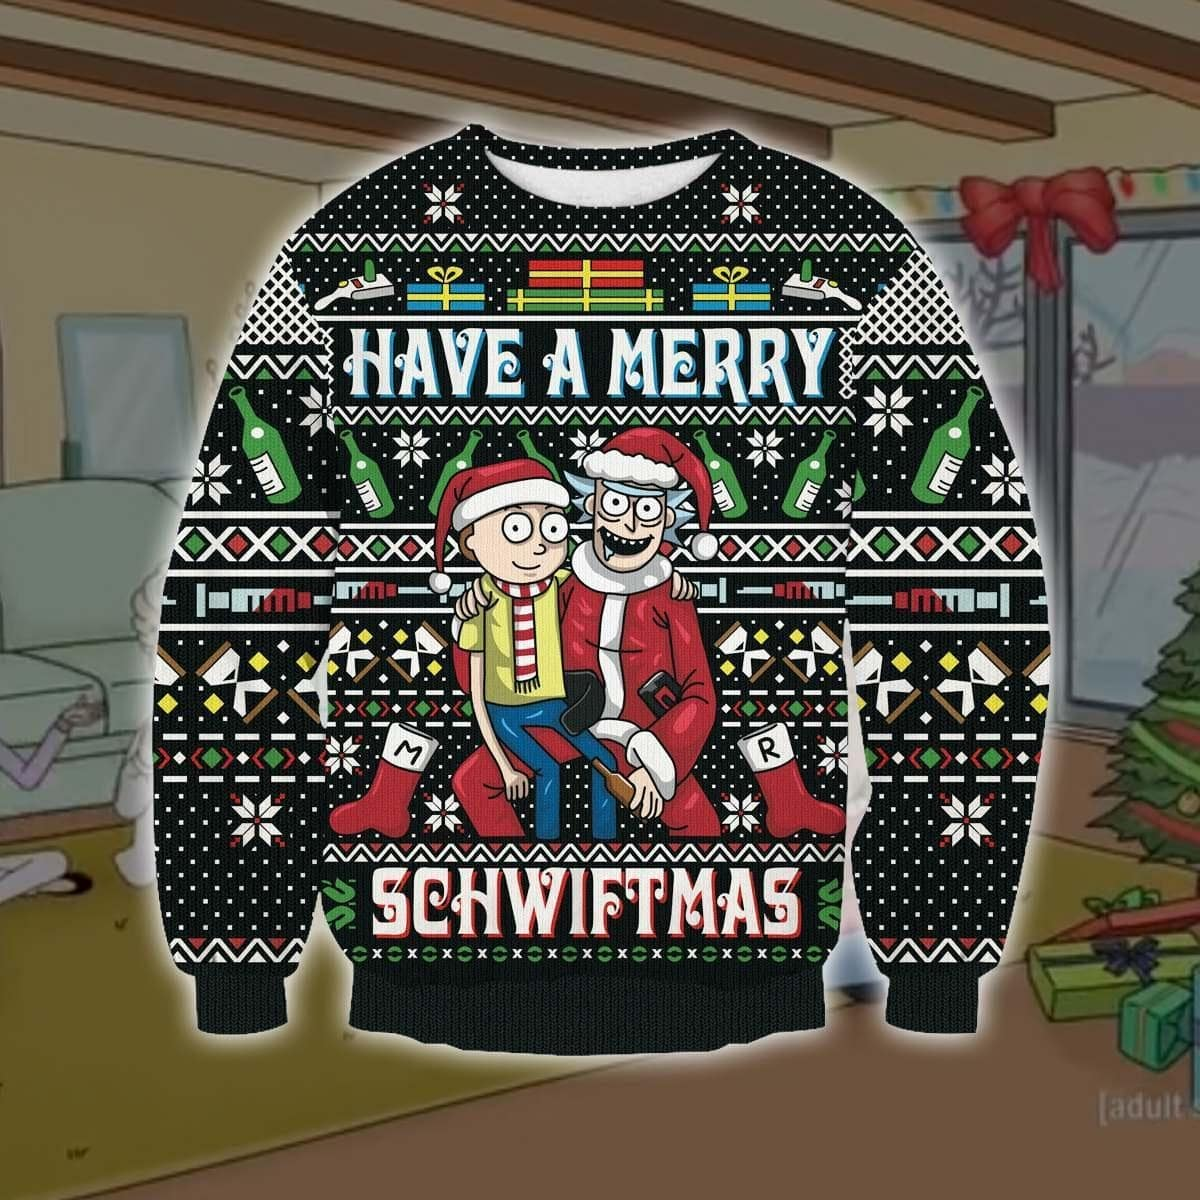 Rick and morty have a merry schwiftmas ugly christmas sweater 4